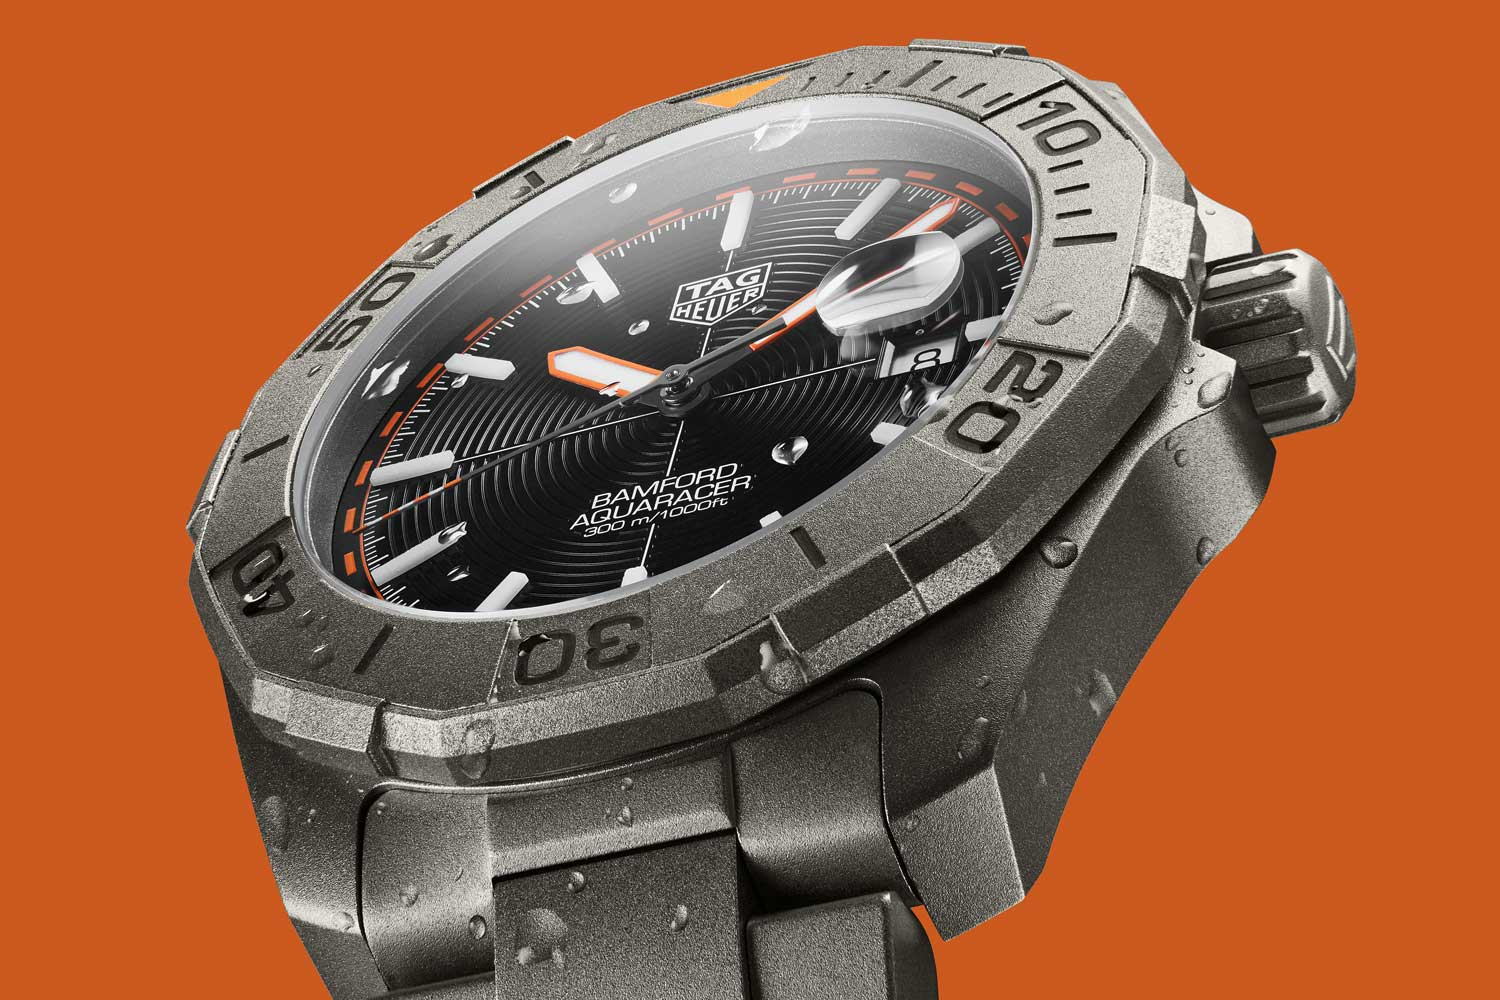 TAG Heuer X Bamford Watch Department Limited Edition Aquaracer